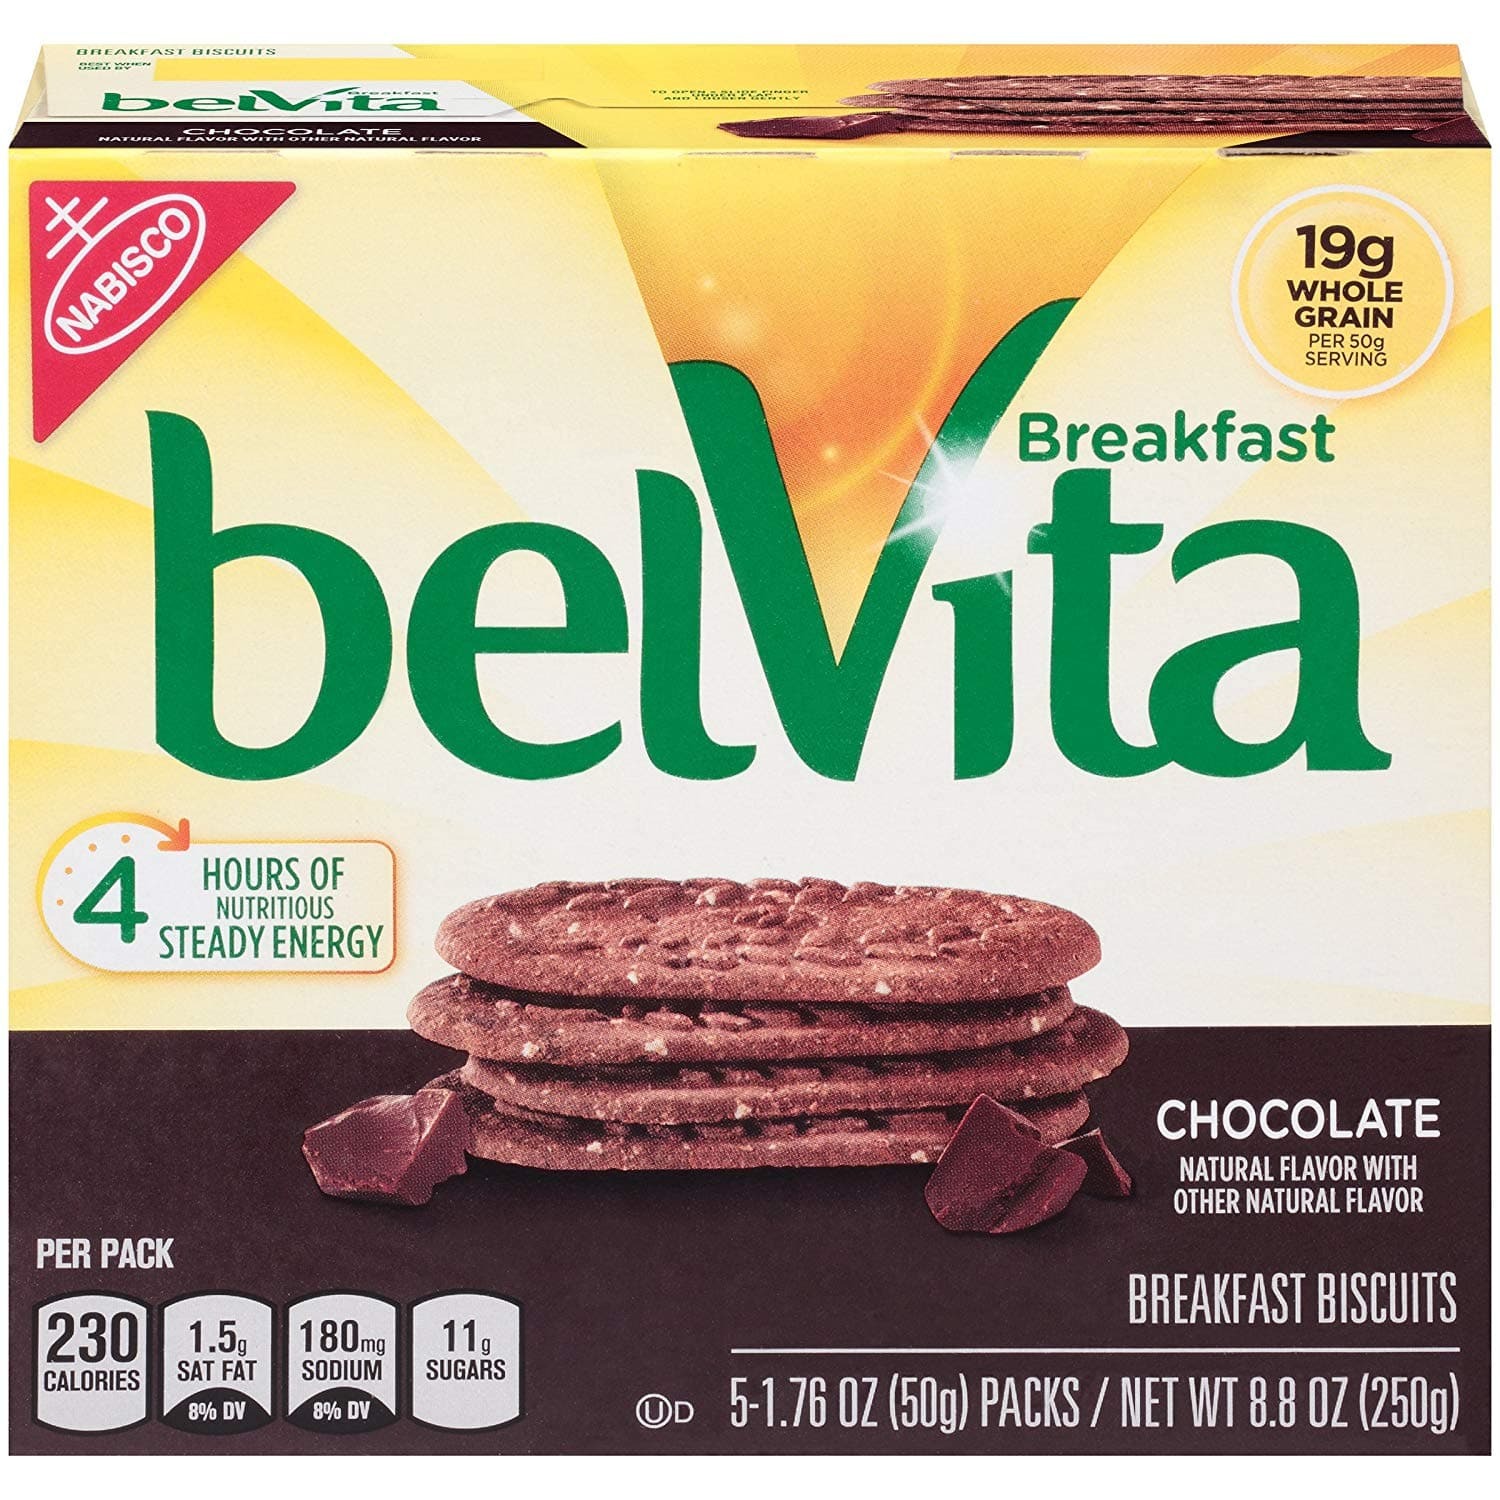 belVita Breakfast Biscuits, Chocolate Flavor, (Pack of 6) (4 Biscuits Per Pack): $14.41 or less w/S&S and A/c